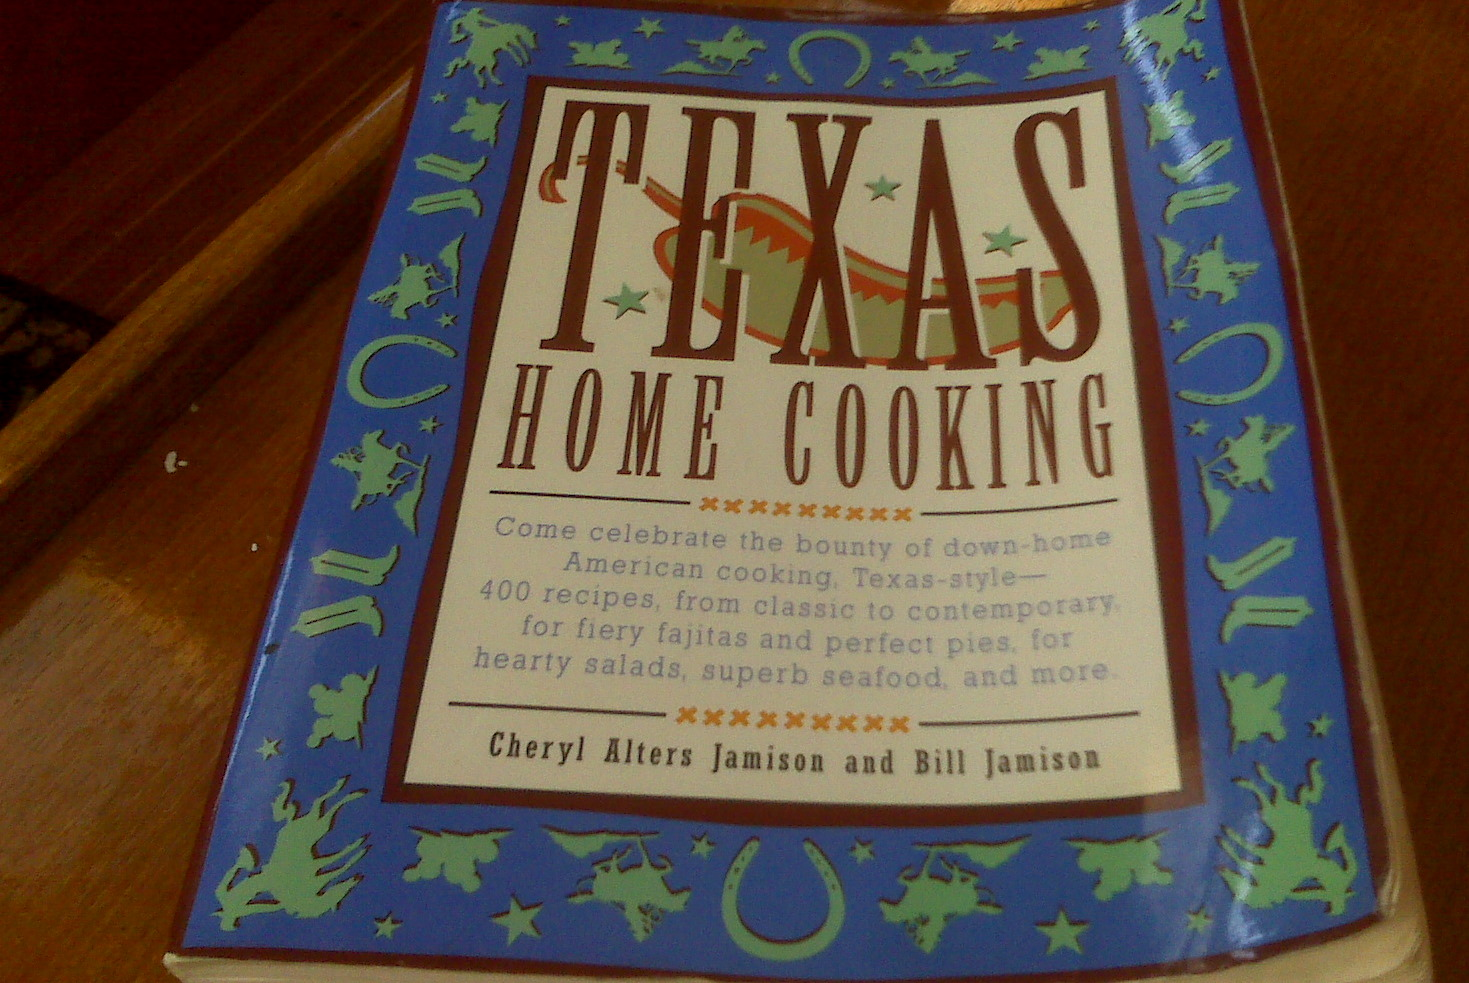 _Media Card_BlackBerry_pictures_Texas Home Cooking